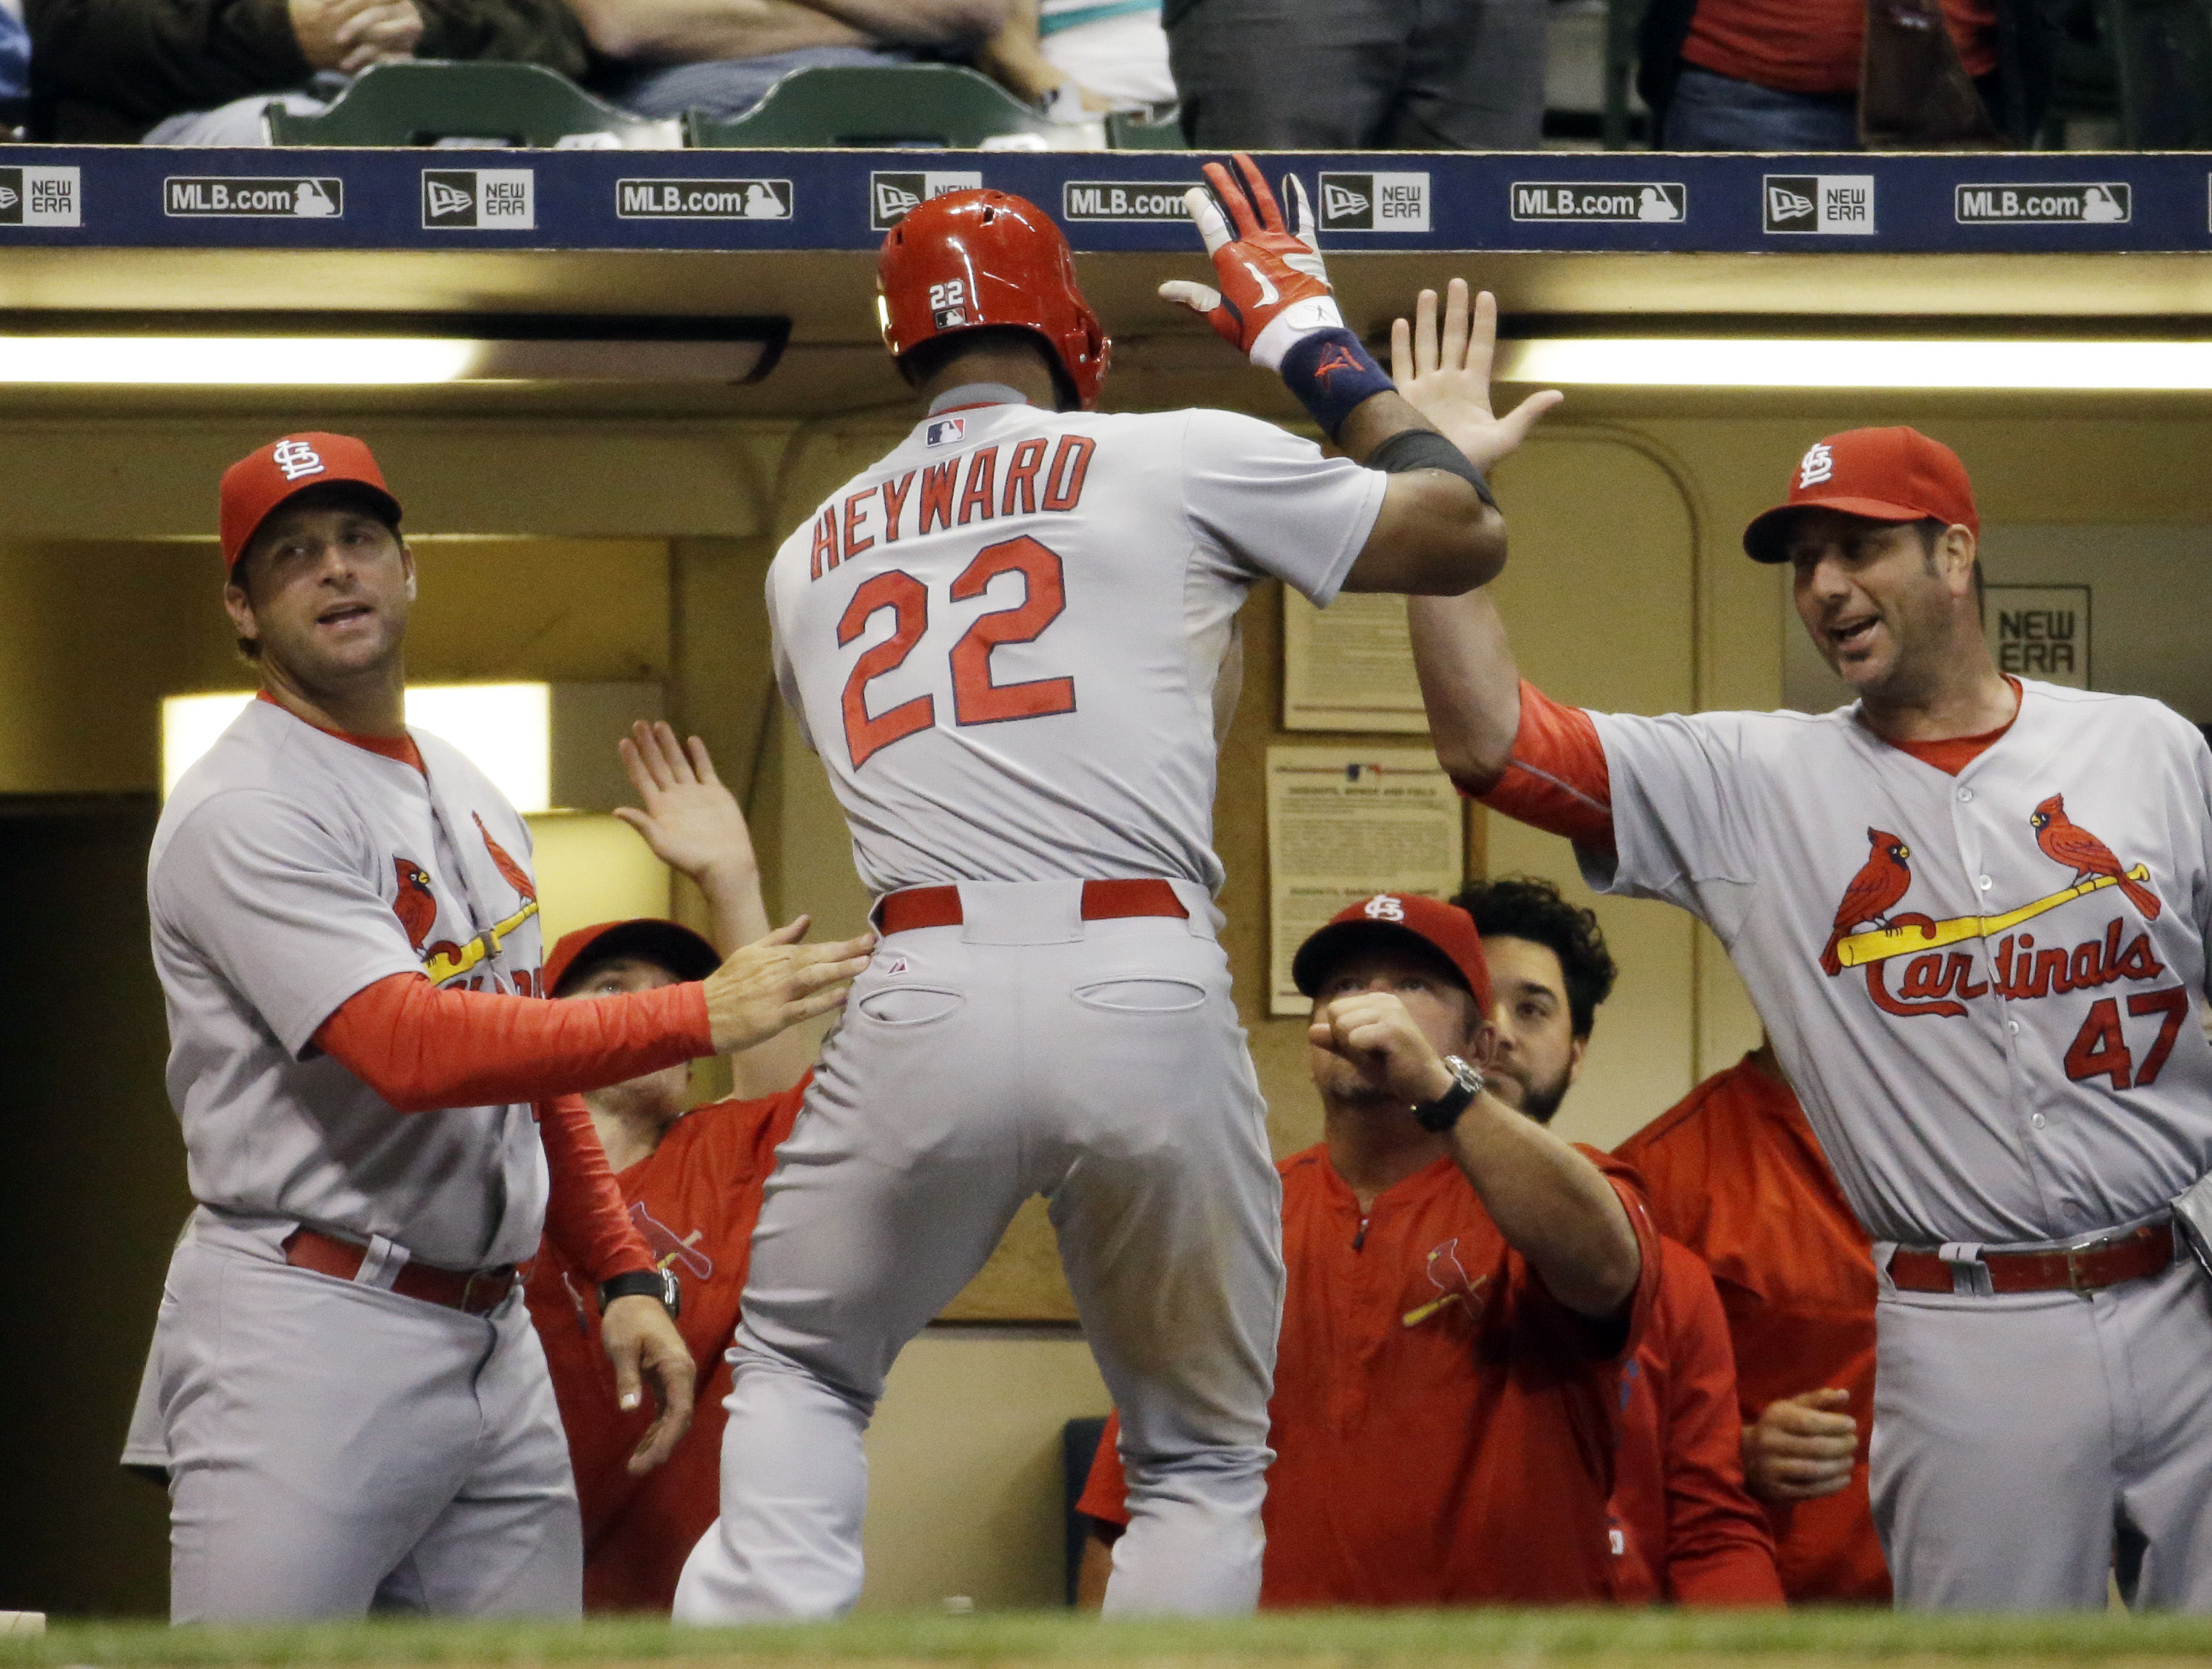 St. Louis Cardinals' Jason Heyward (22) is congratulated after hitting a two-run home run during the 10th inning of a baseball game against the Milwaukee Brewers Tuesday, Sept. 15, 2015, in Milwaukee. (AP Photo/Morry Gash)